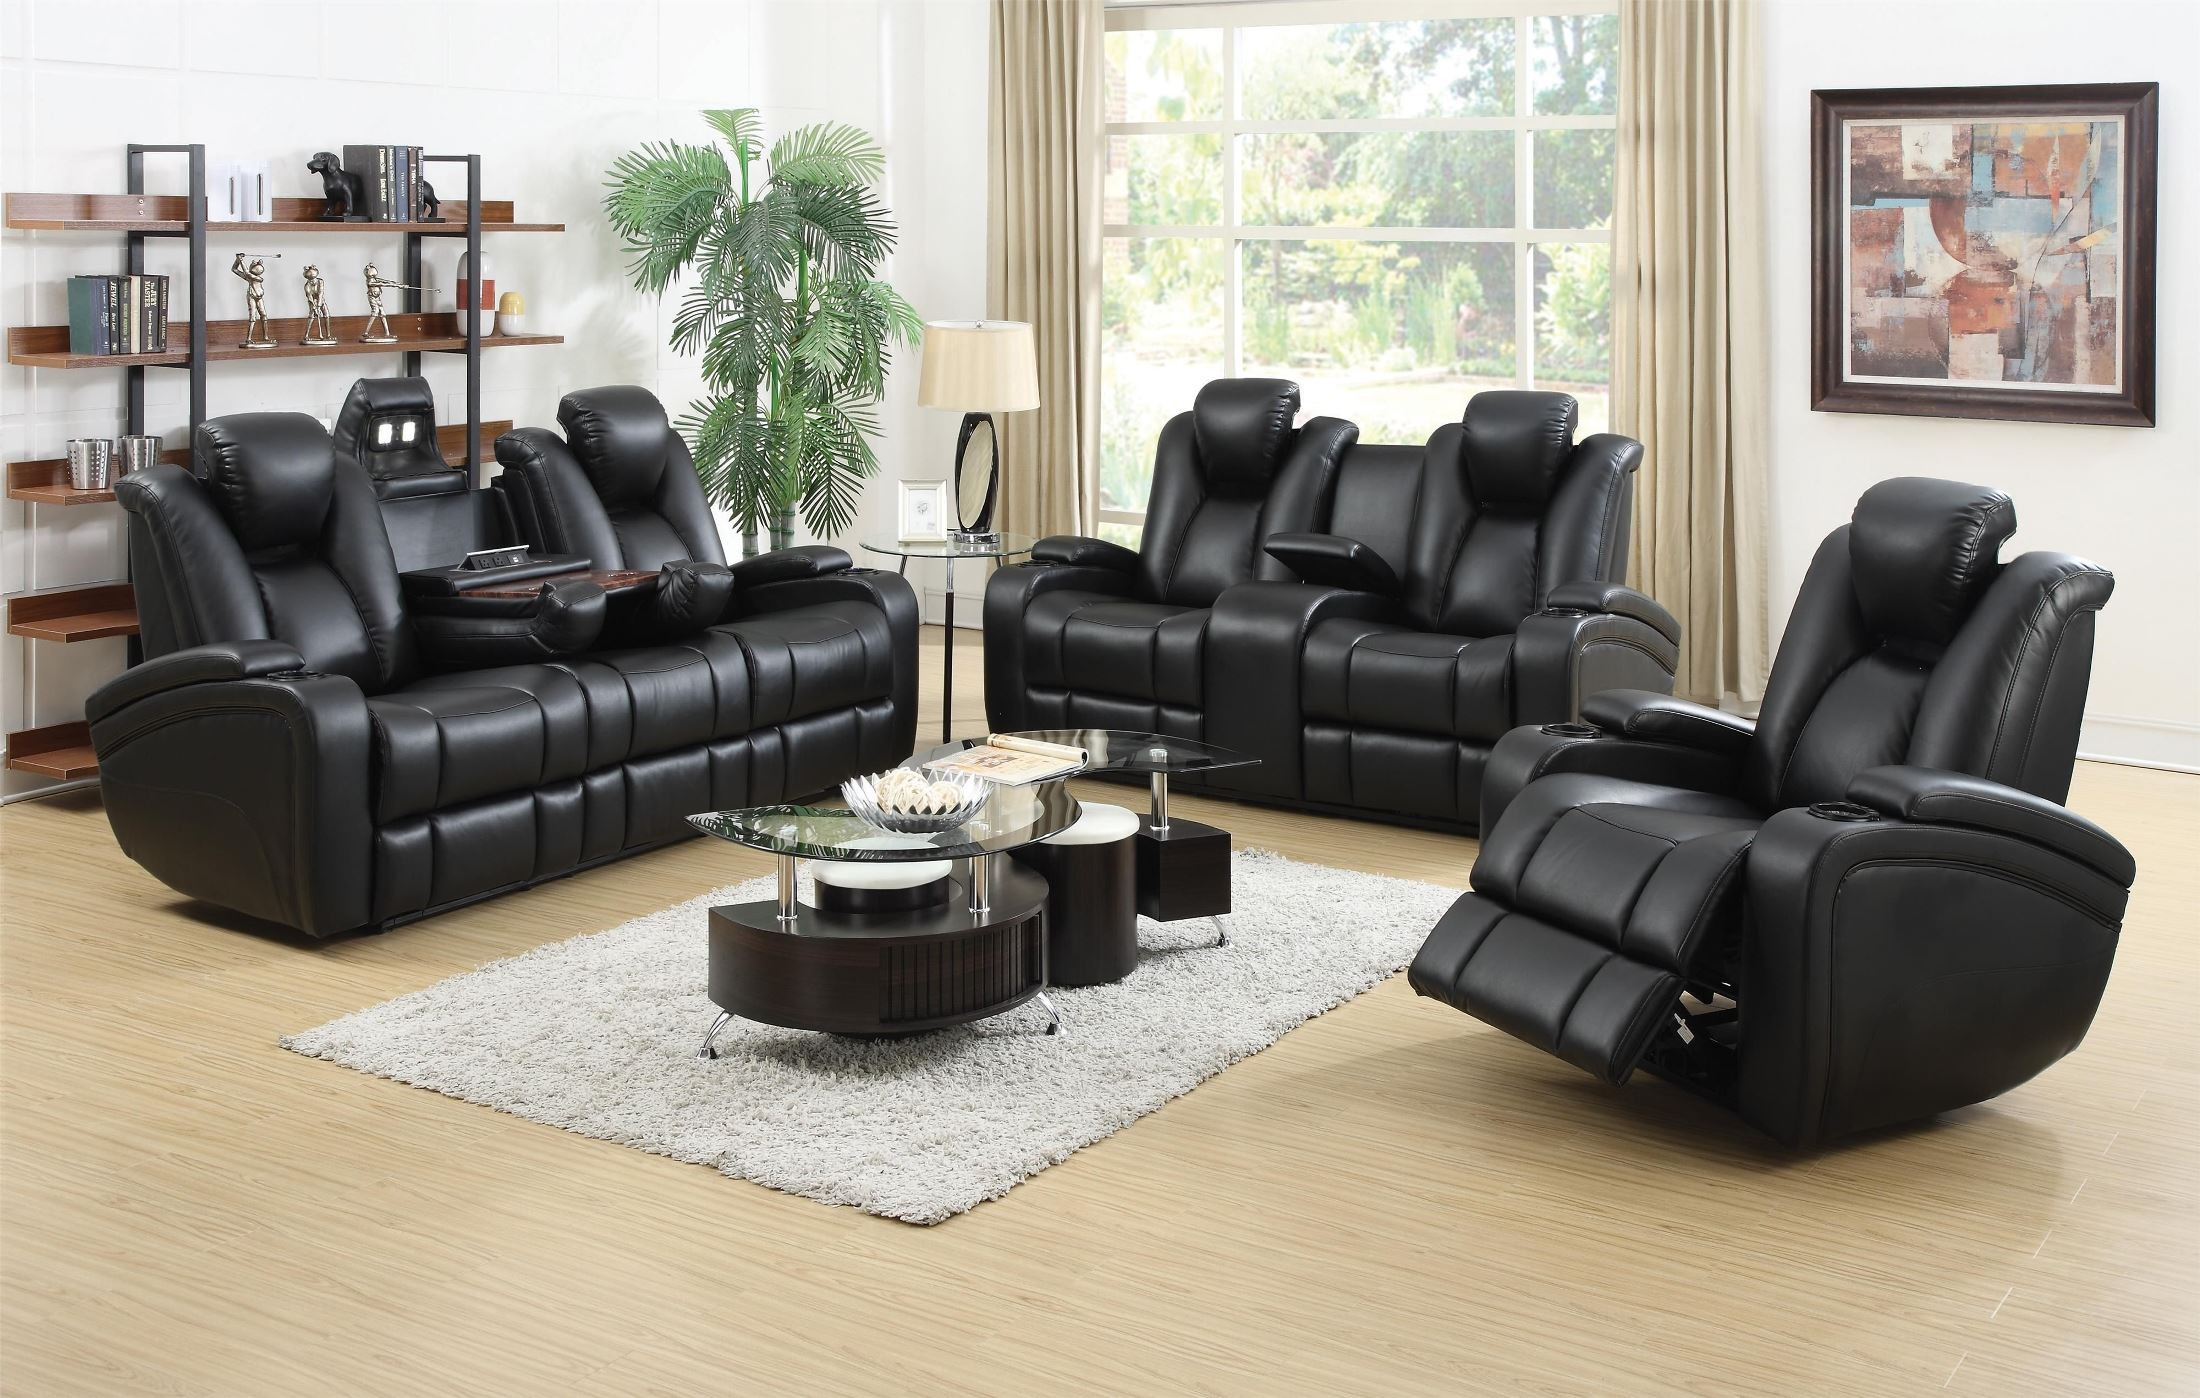 604859 & Delange Power Reclining Sofa from Coaster (601741P) | Coleman ... islam-shia.org